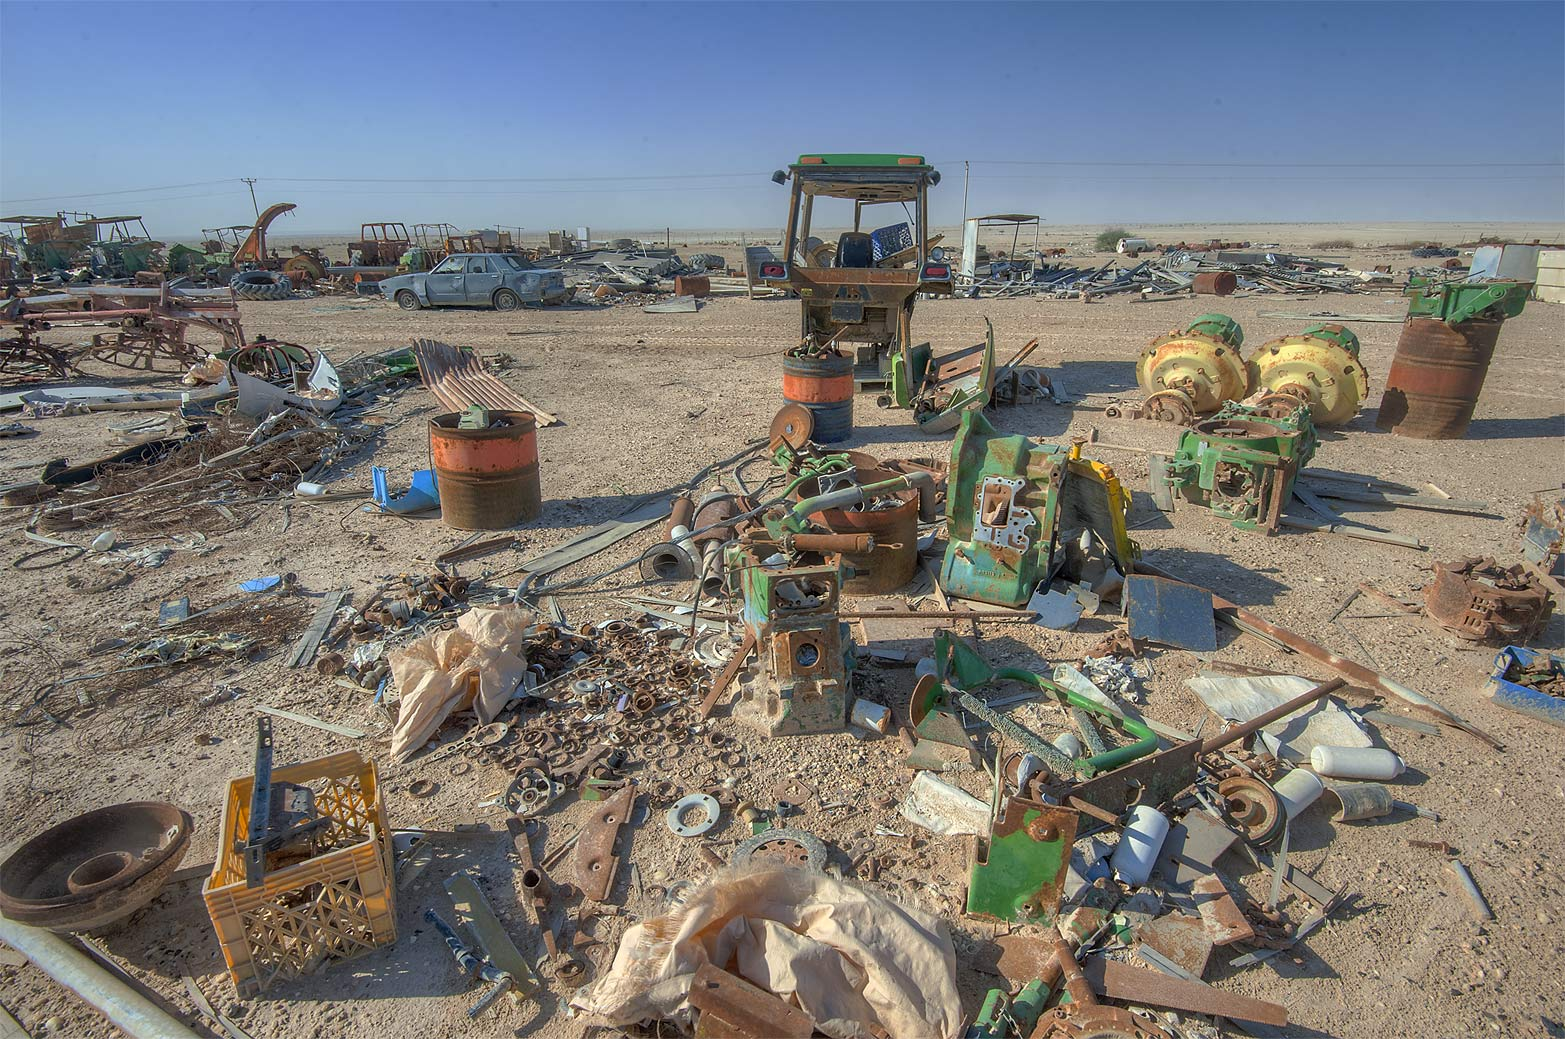 Loose spare parts for agricultural machinery on...in Irkhaya (Irkaya) Farms. Qatar